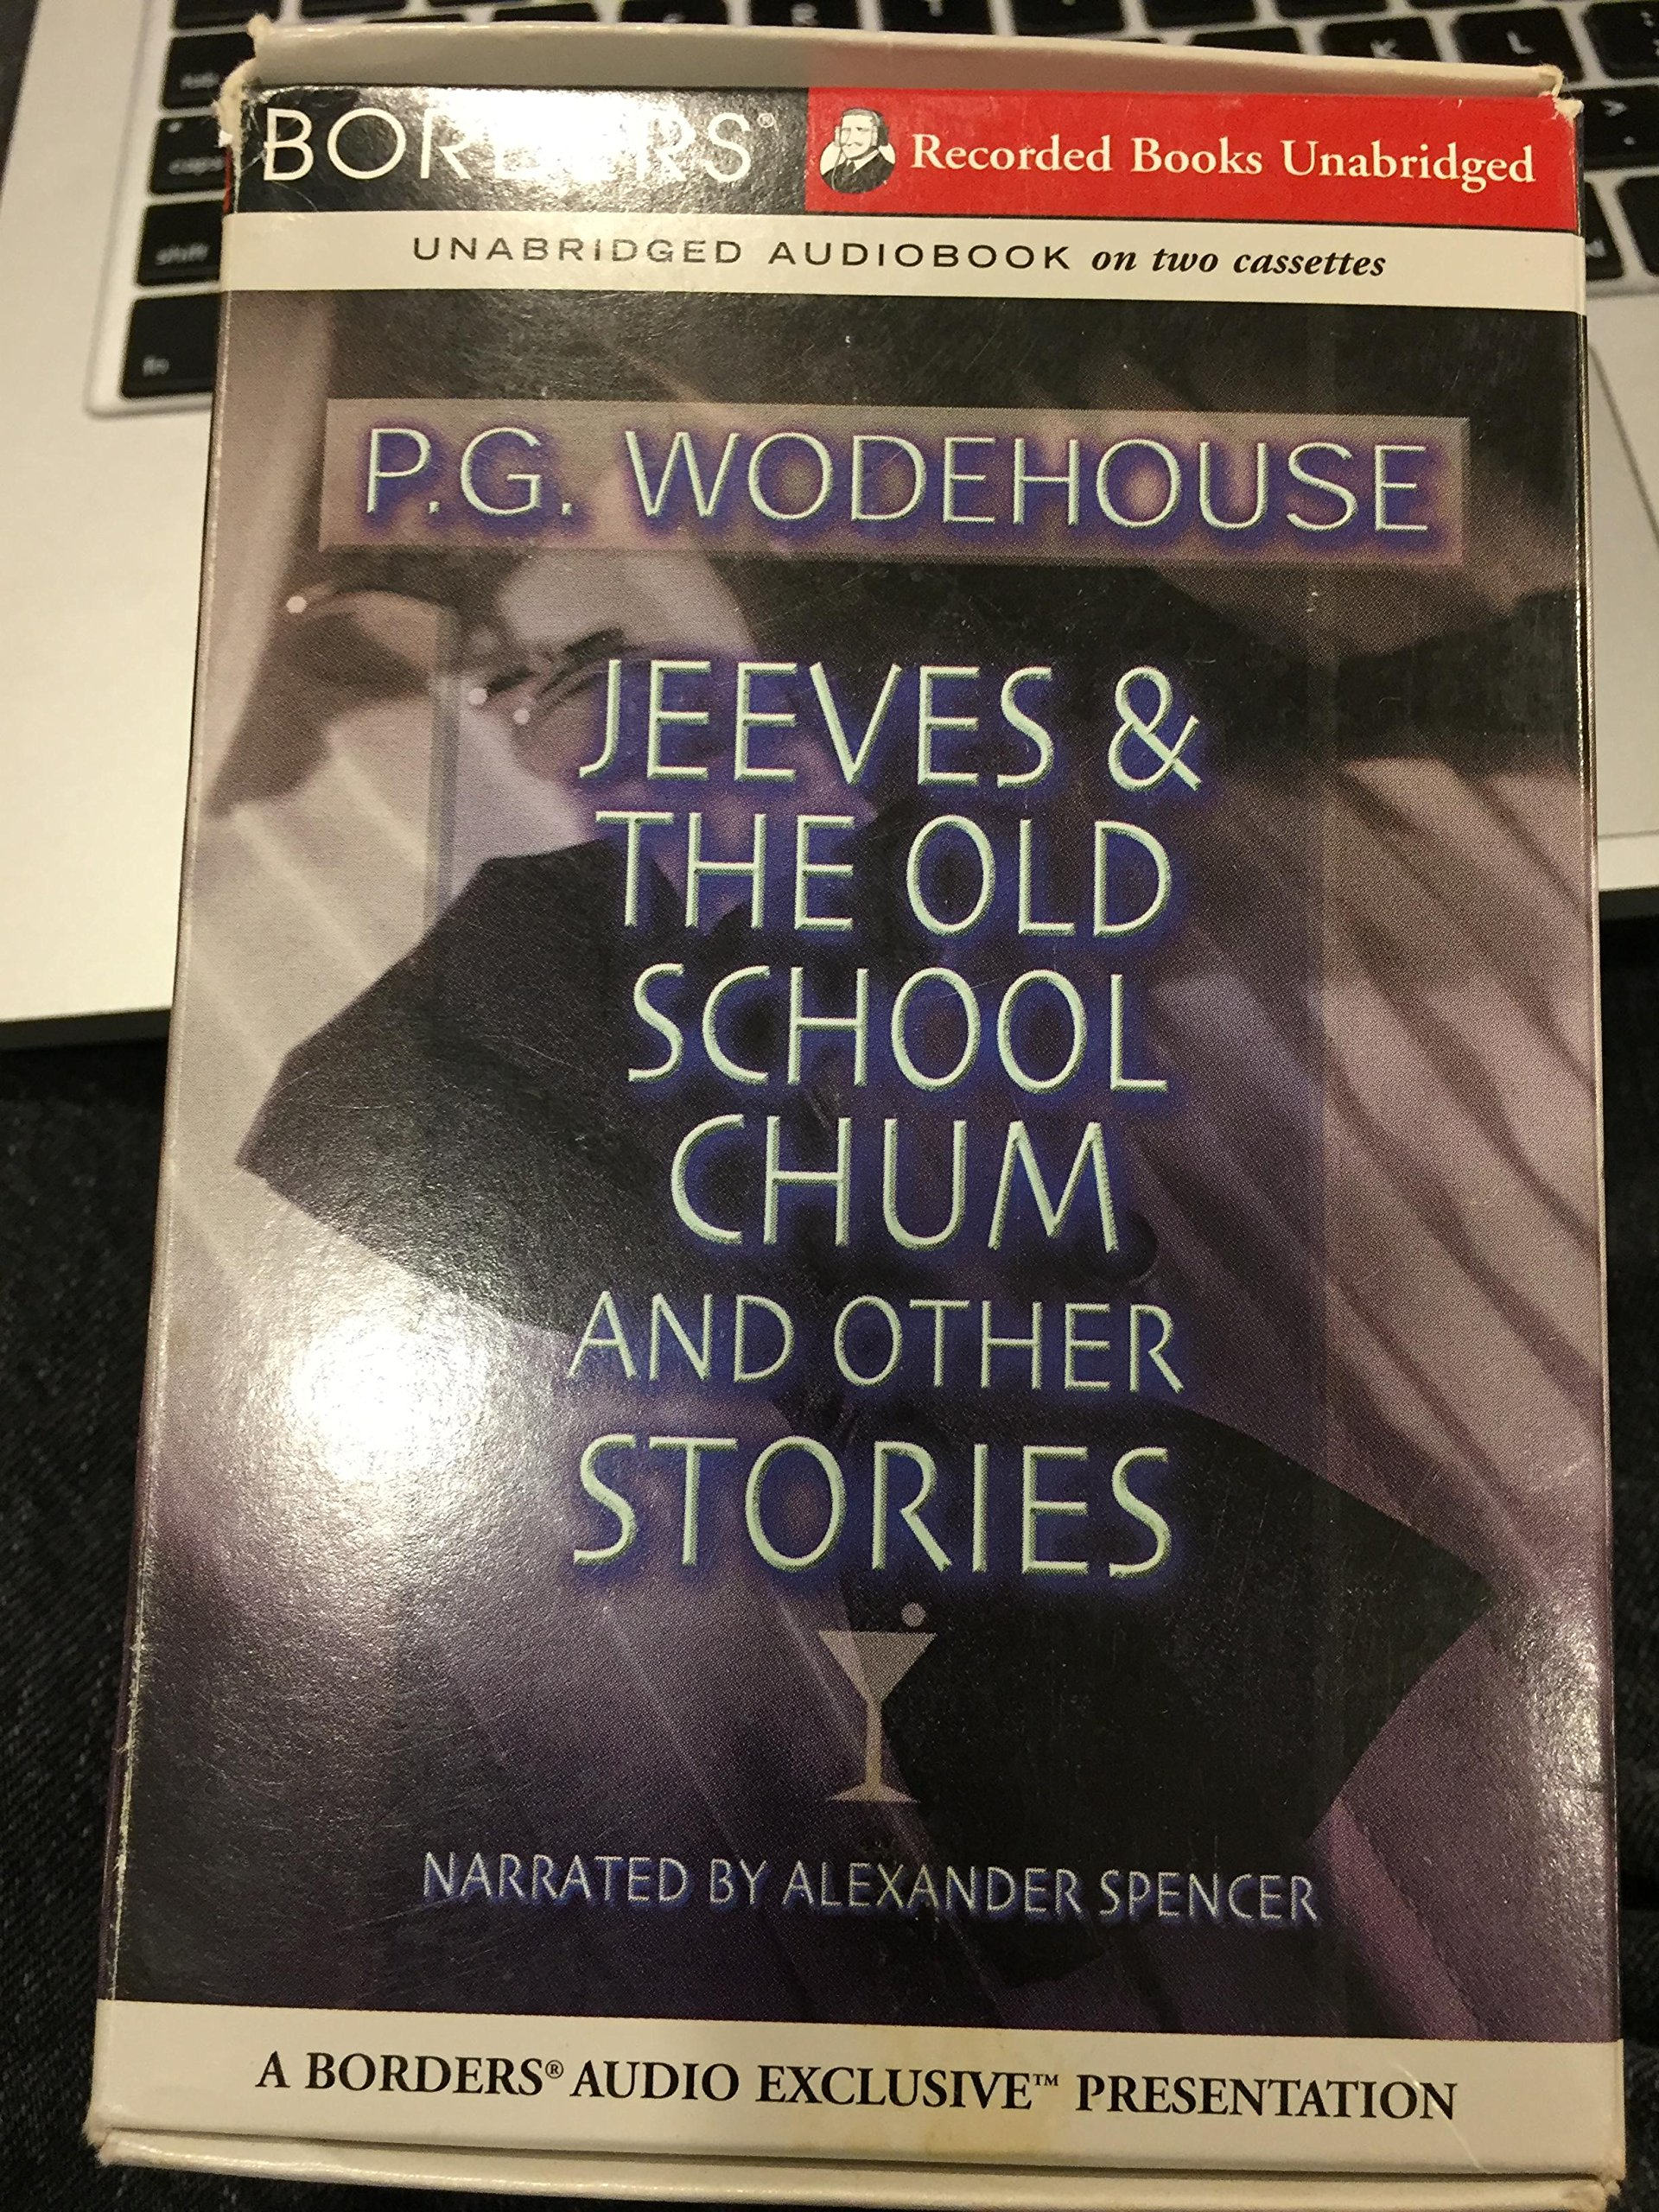 Jeeves and the Old School Chum Collected Stories (3 Cassettes): P. G. Wodehouse: 9789997725950: Amazon.com: Books